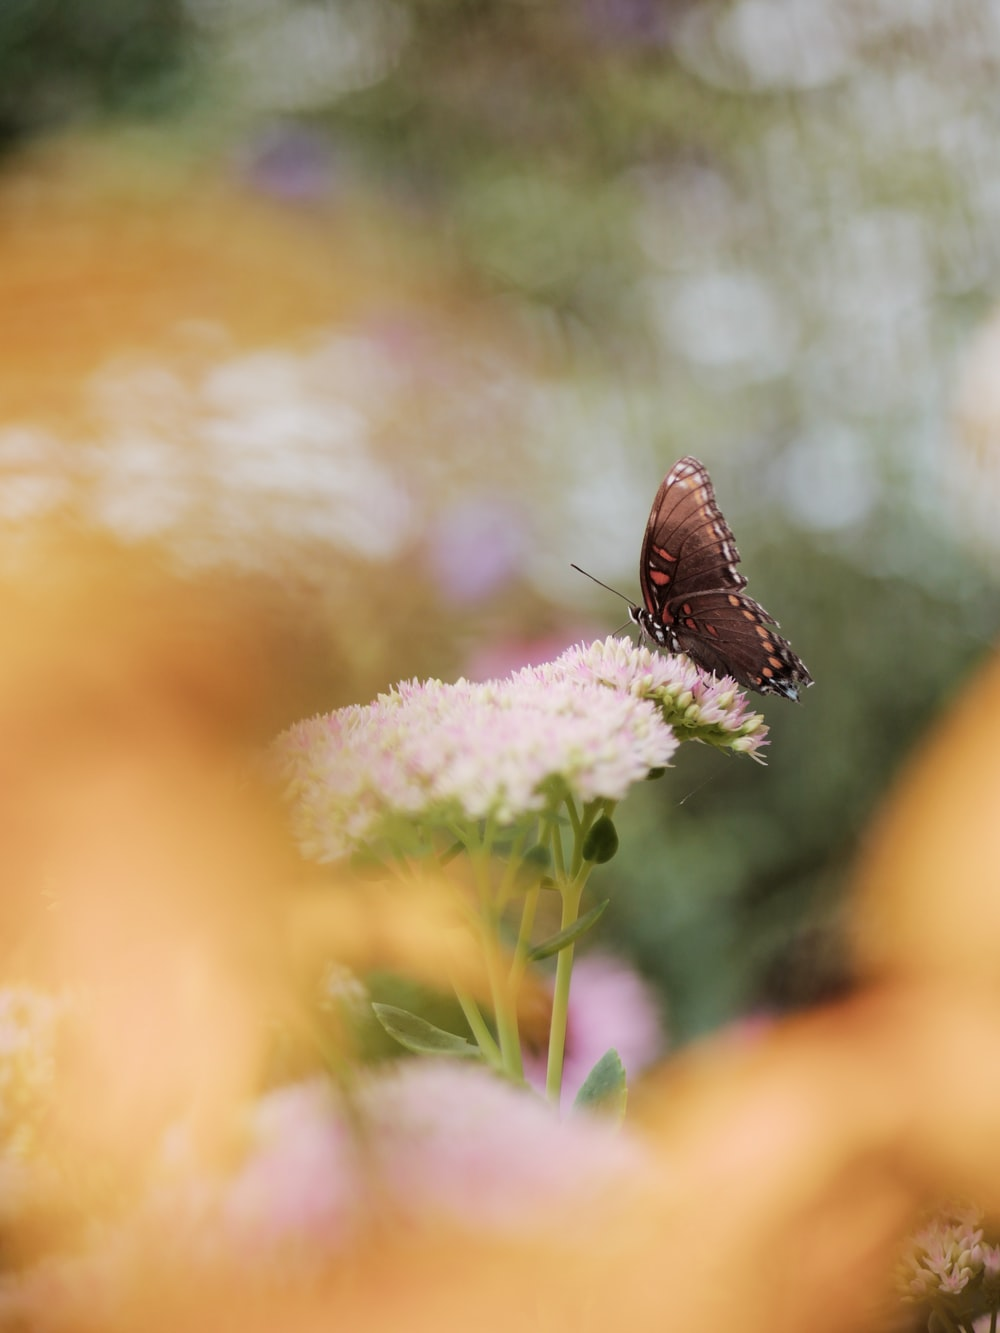 brown butterfly perched on white flower in close up photography during daytime